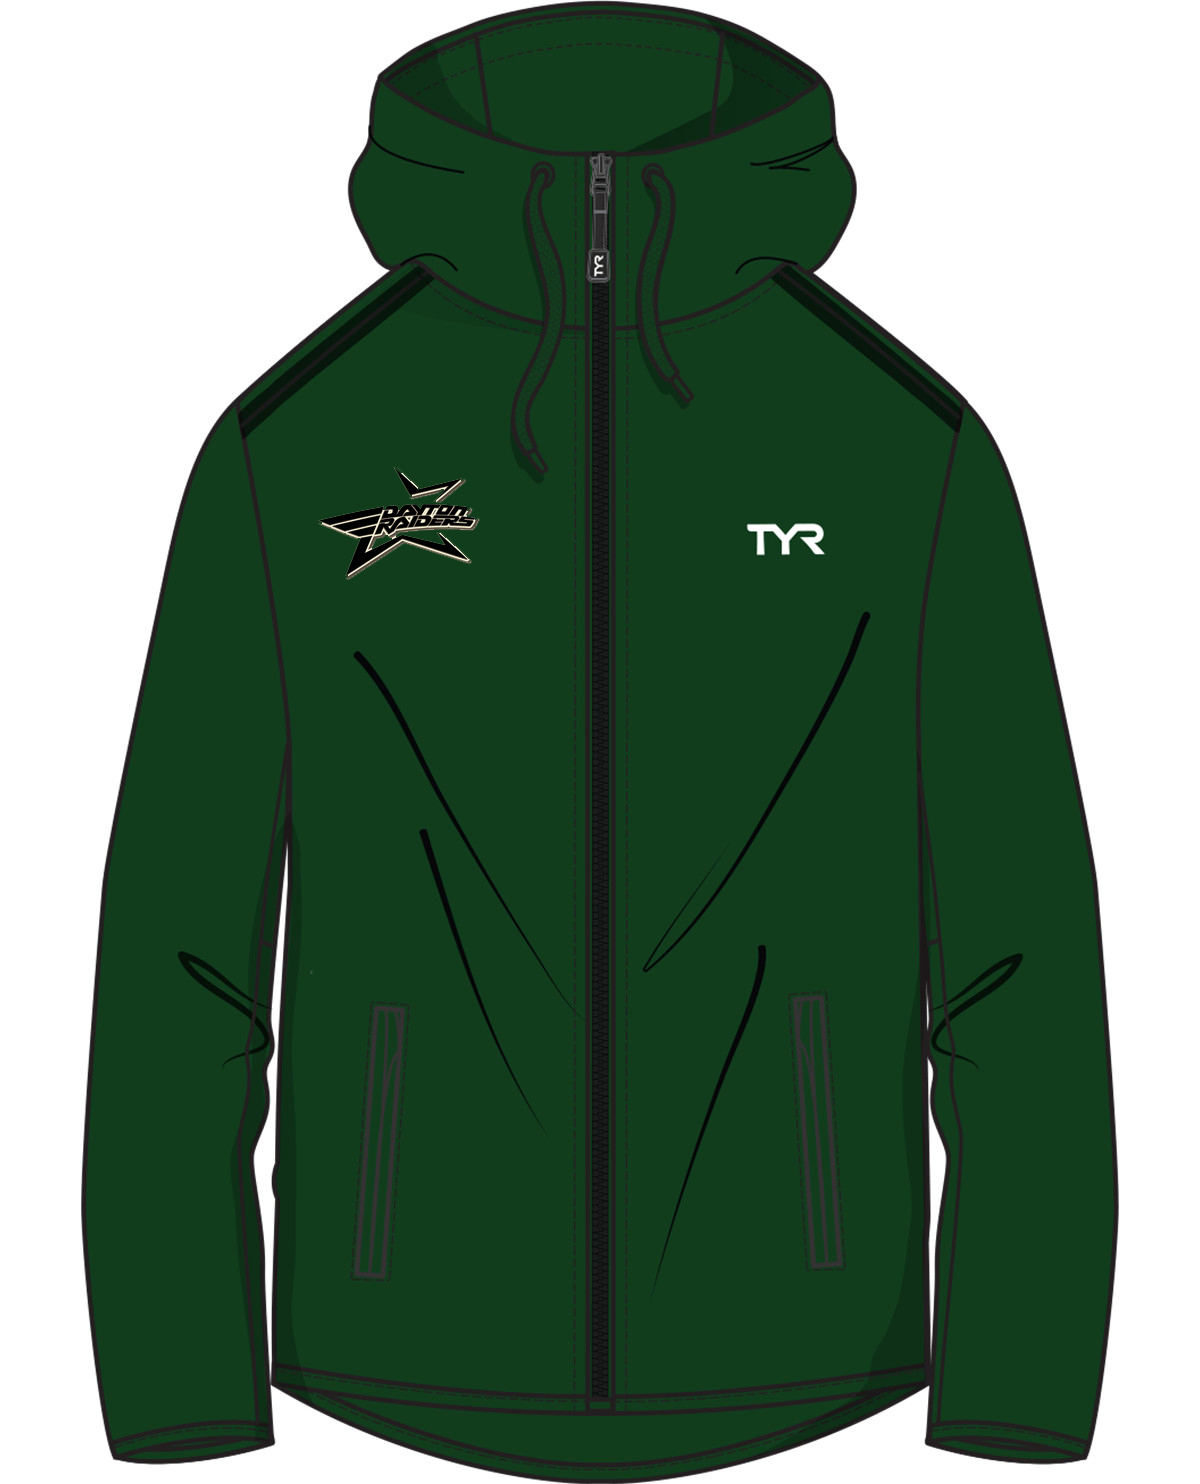 sports shoes 590df 9bade TYR Team Full Zip Hoodie (Green) w/ Embroidered Team Logo and Swimmer Name